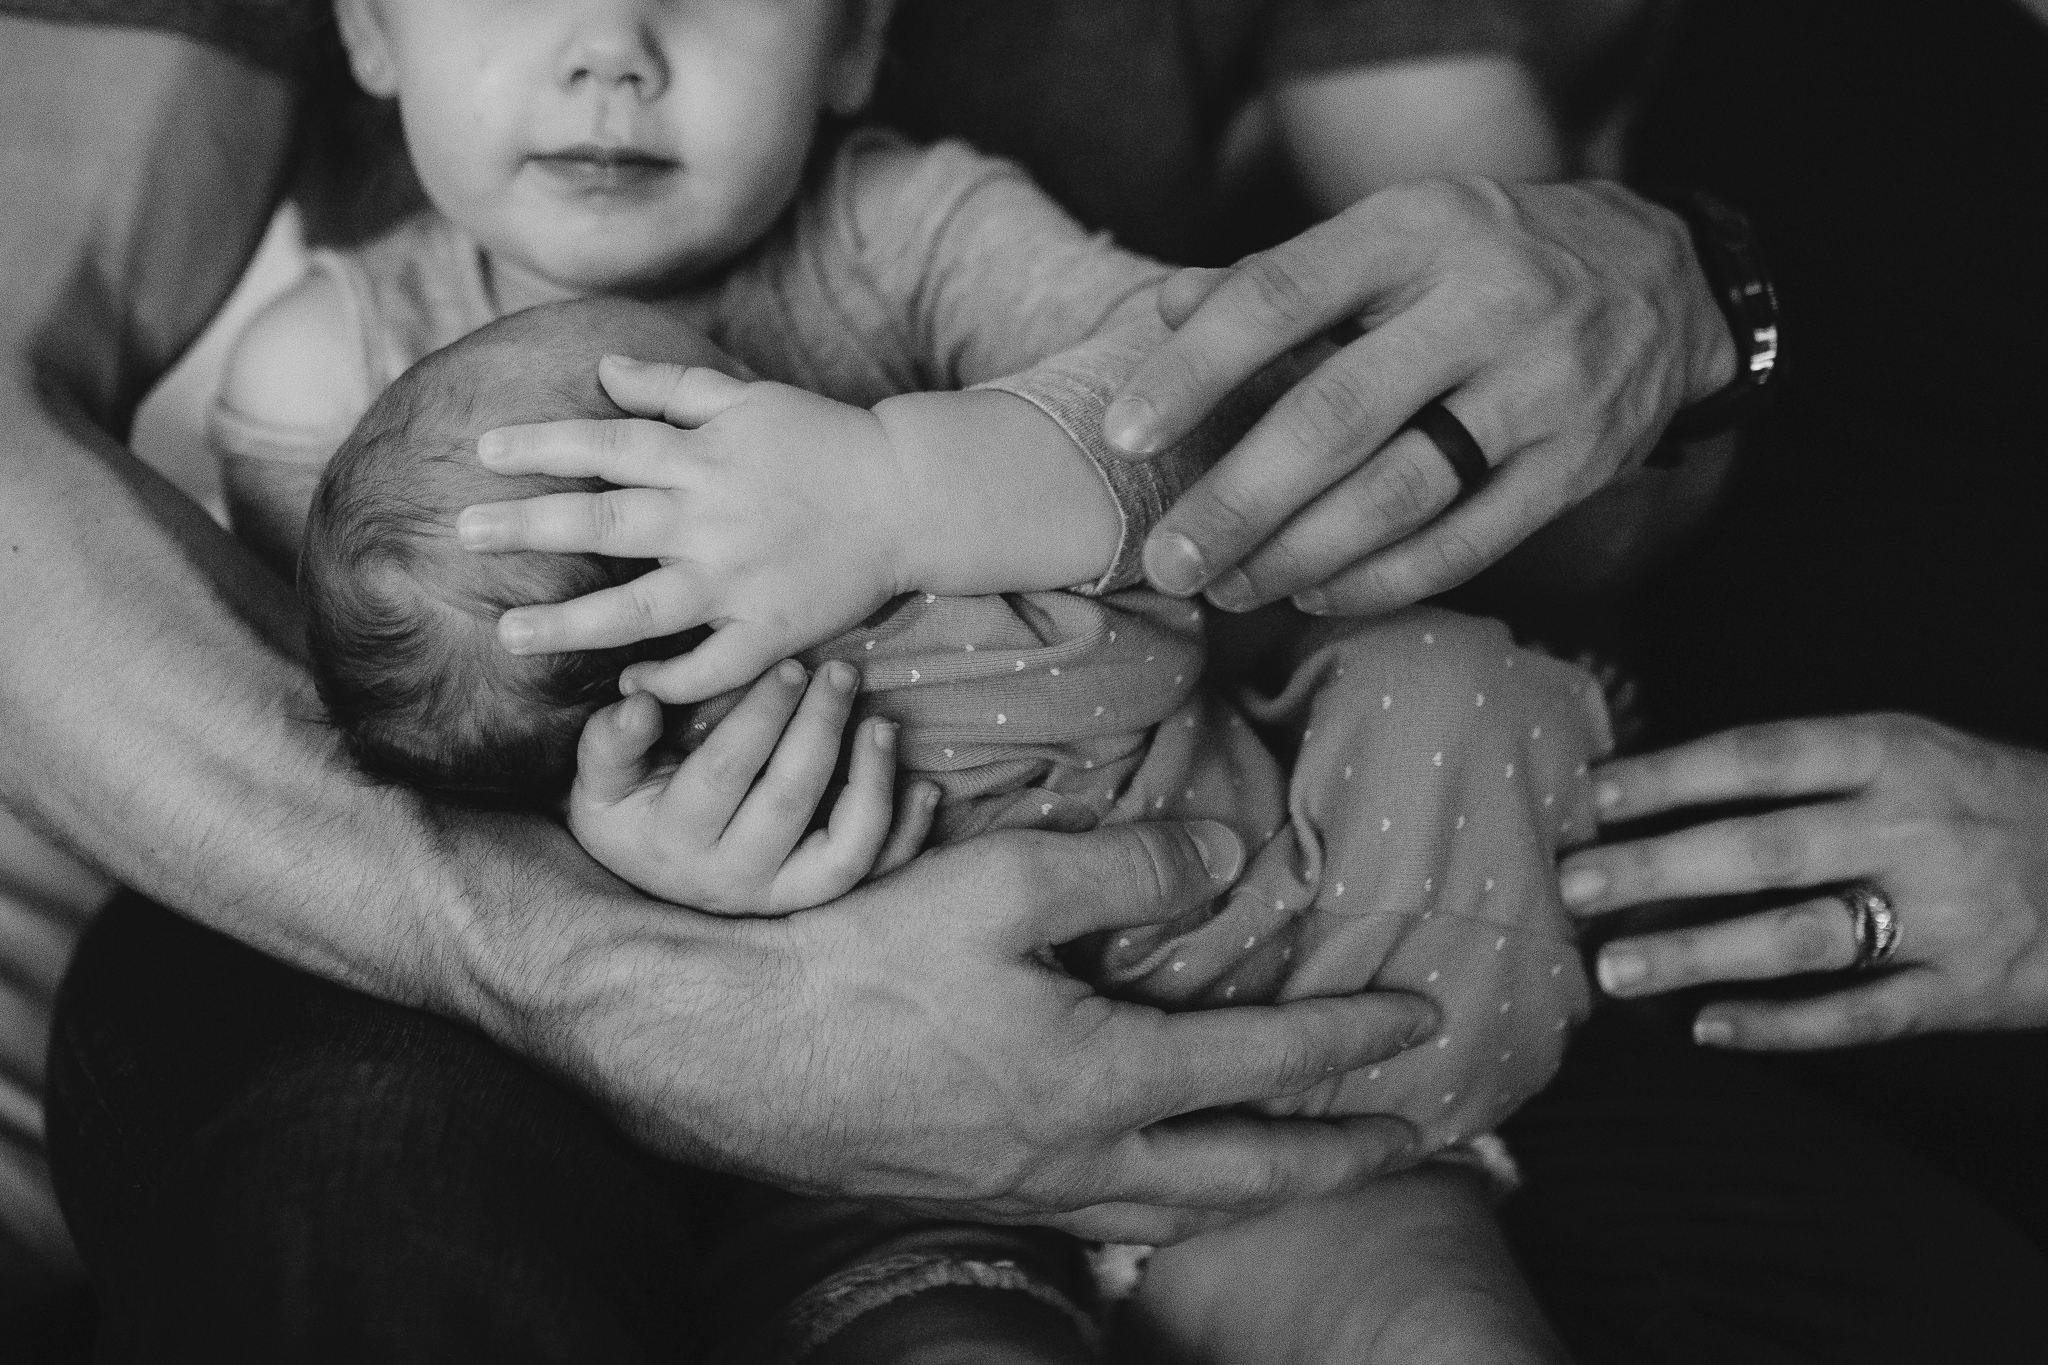 black and white hands details newborn baby girl lifestyle documentary family Leesburg Loudoun Virginia Marti Austin Photography